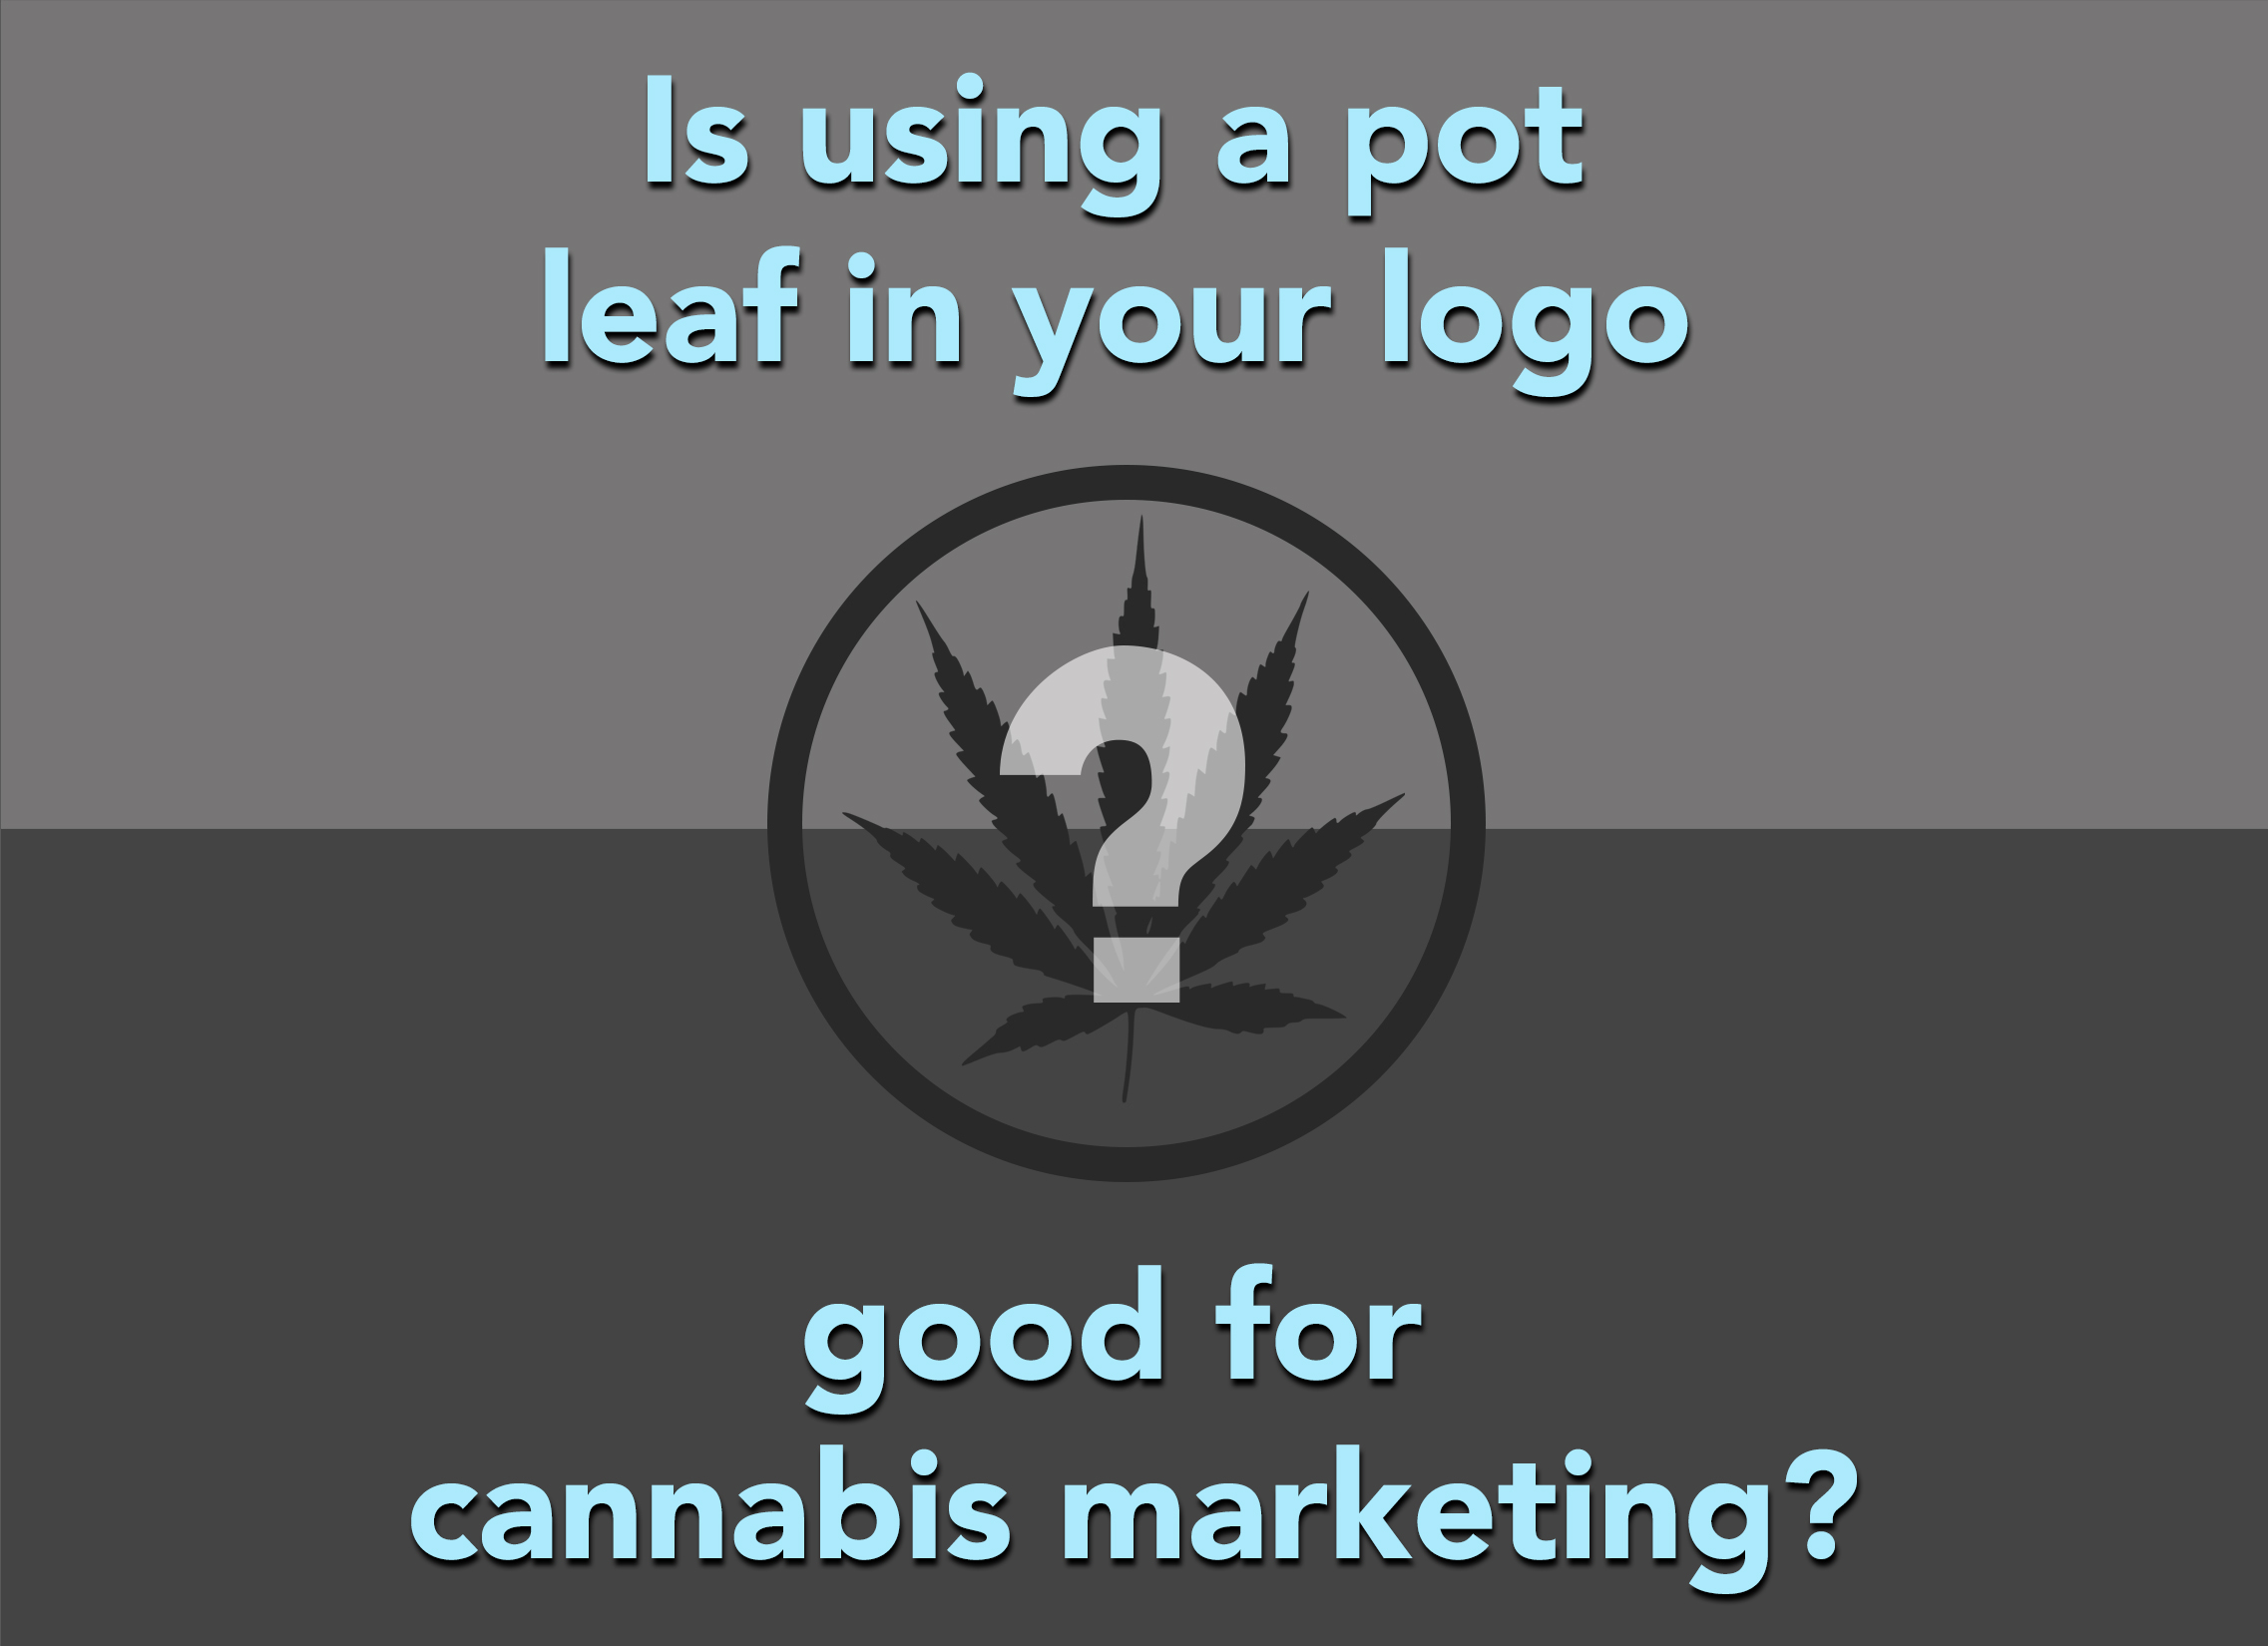 Is using a pot leaf in your logo good for cannabis marketing?